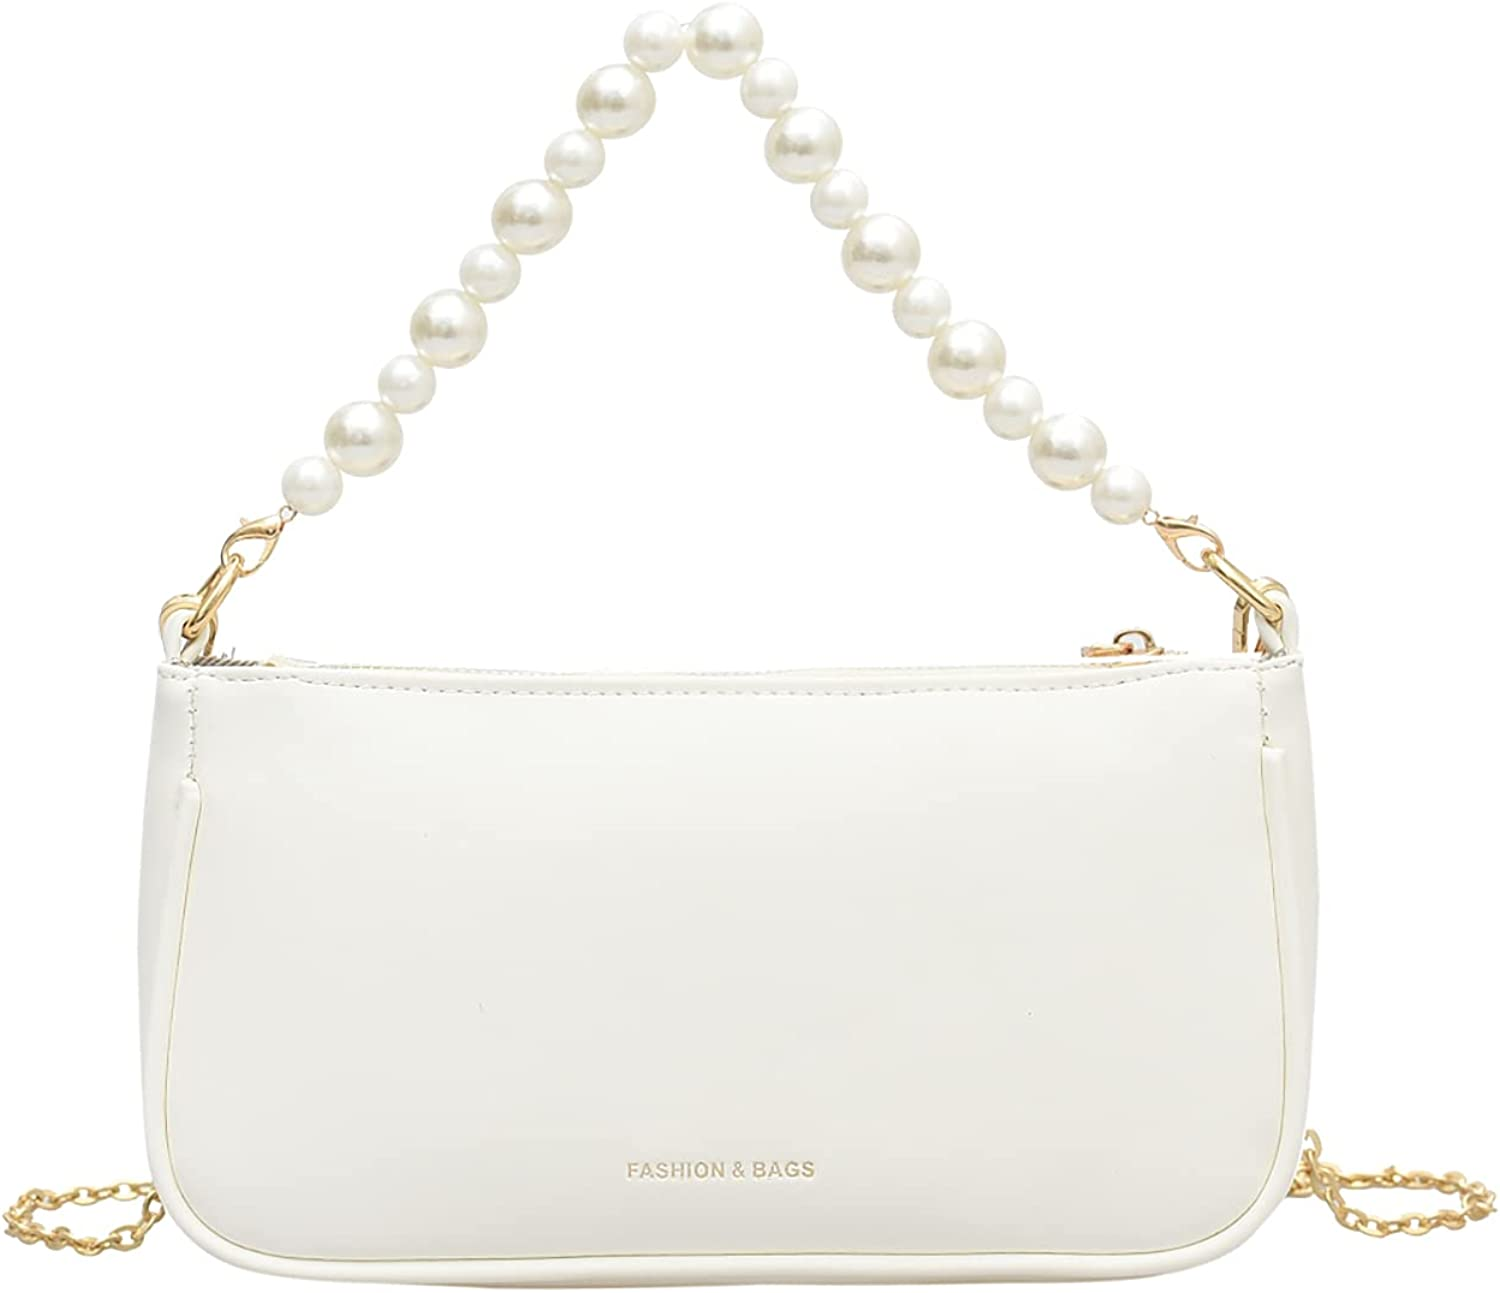 Small New arrival Crossbody Outlet SALE Purse for Women - Shoulder PU Leather Bag Weddin